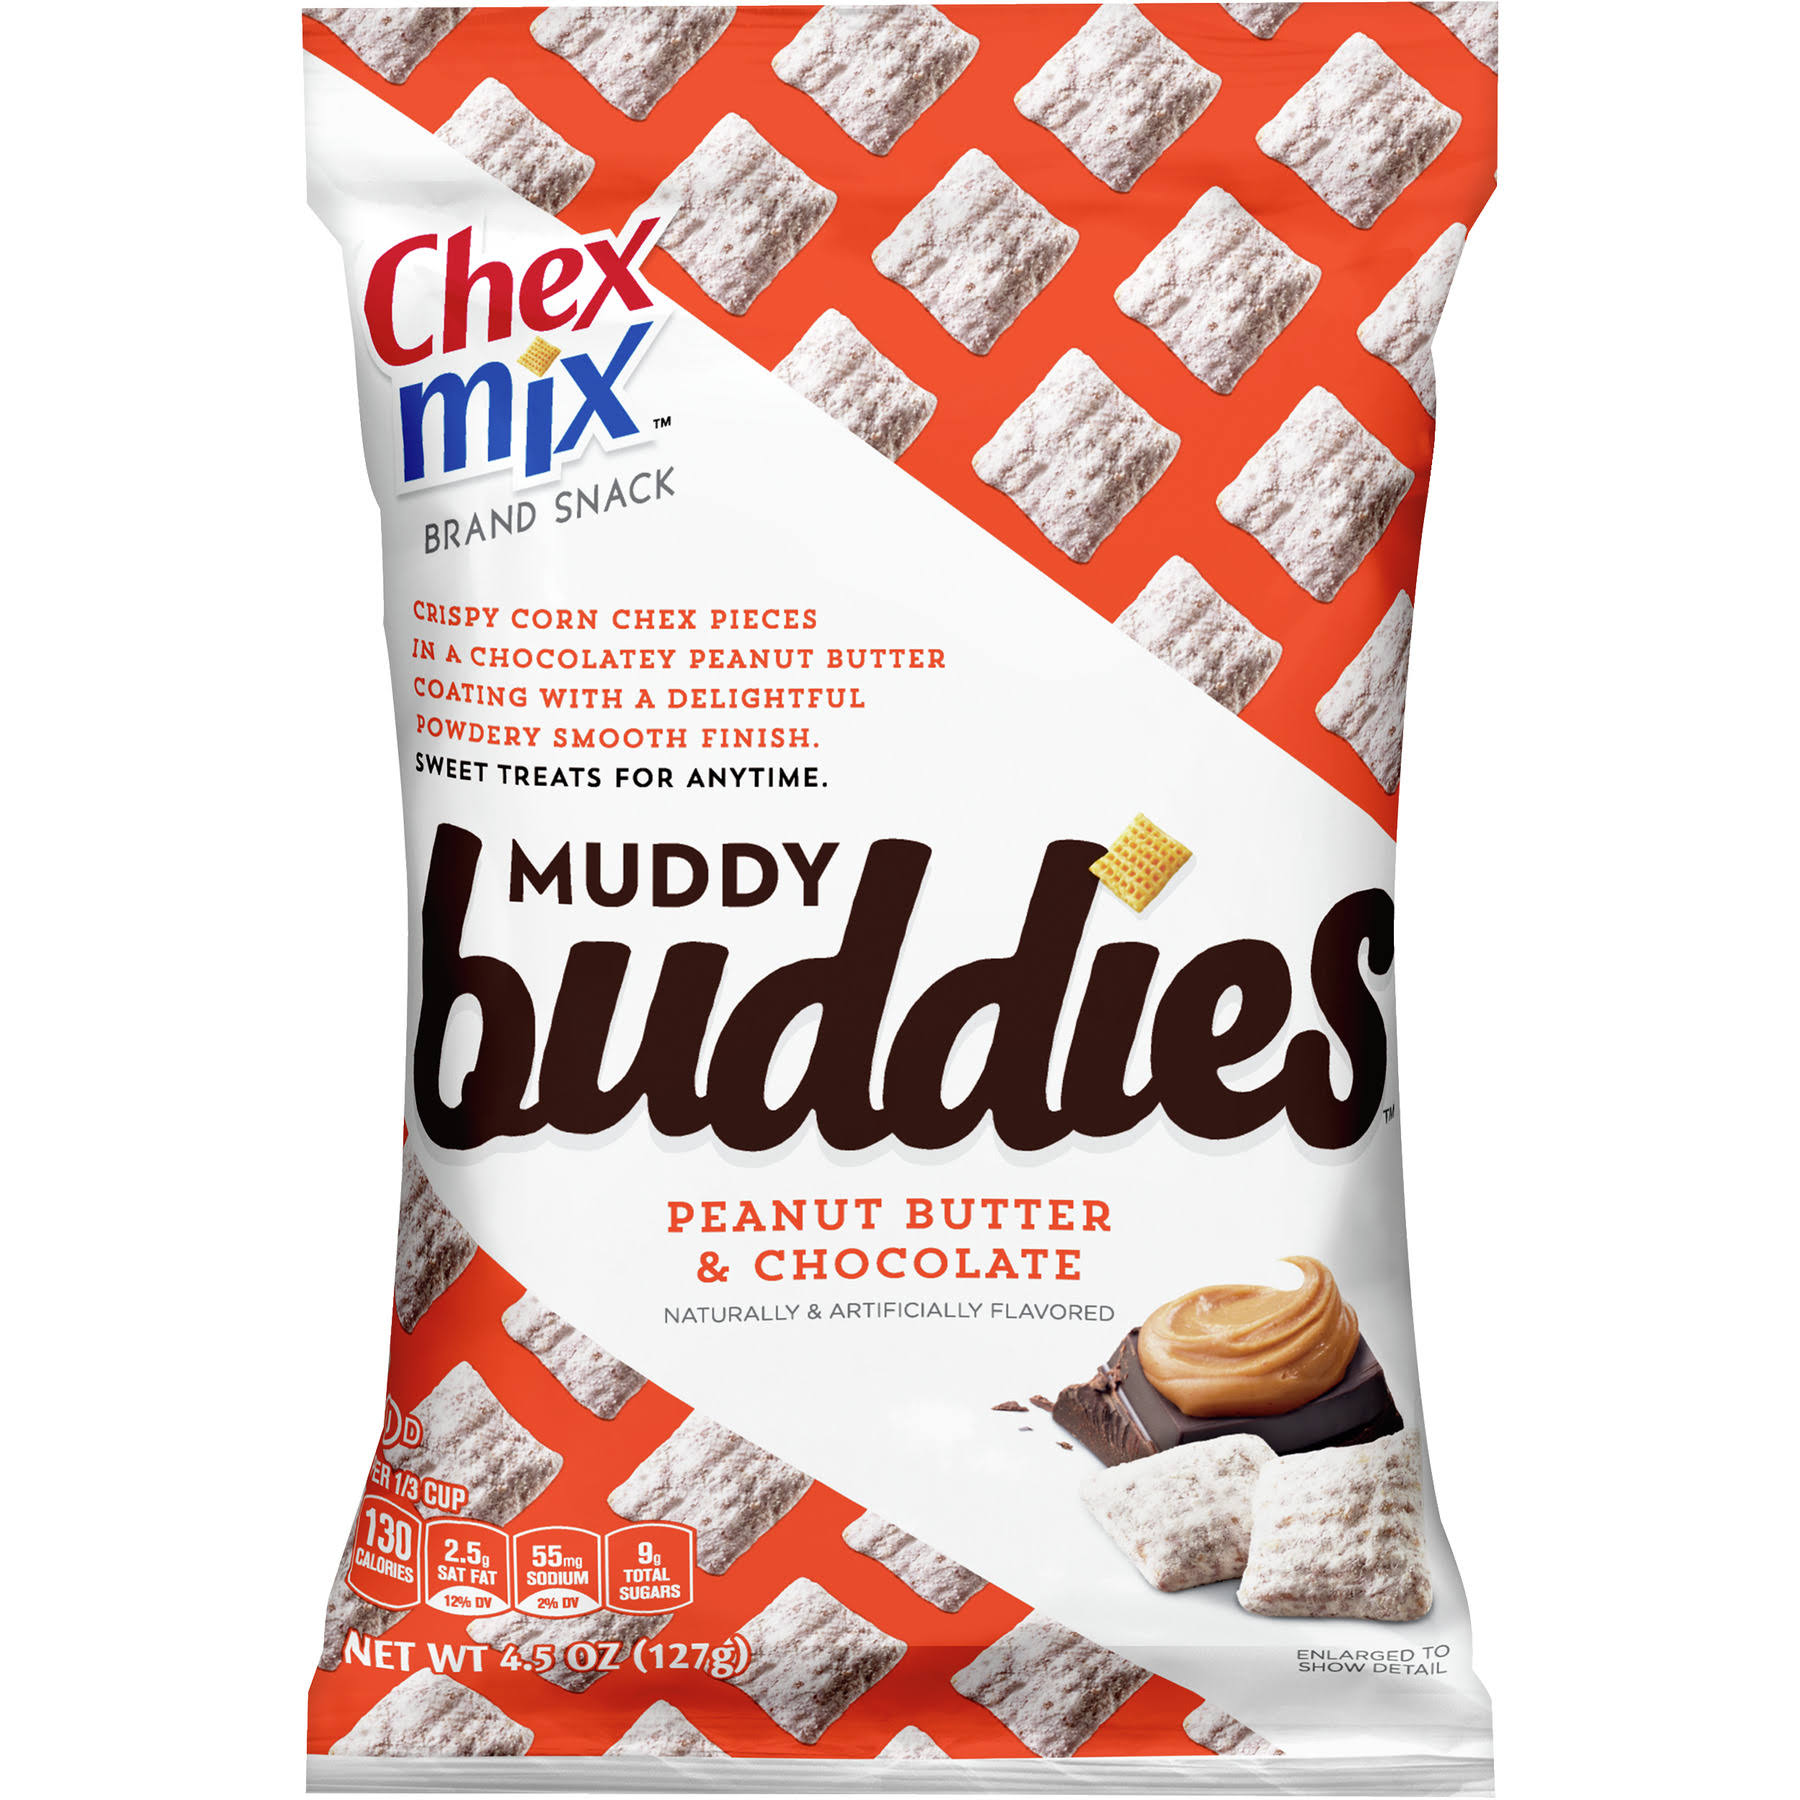 Chex Mix Muddy Buddies - Peanut Butter and Chocolate, 4.5oz